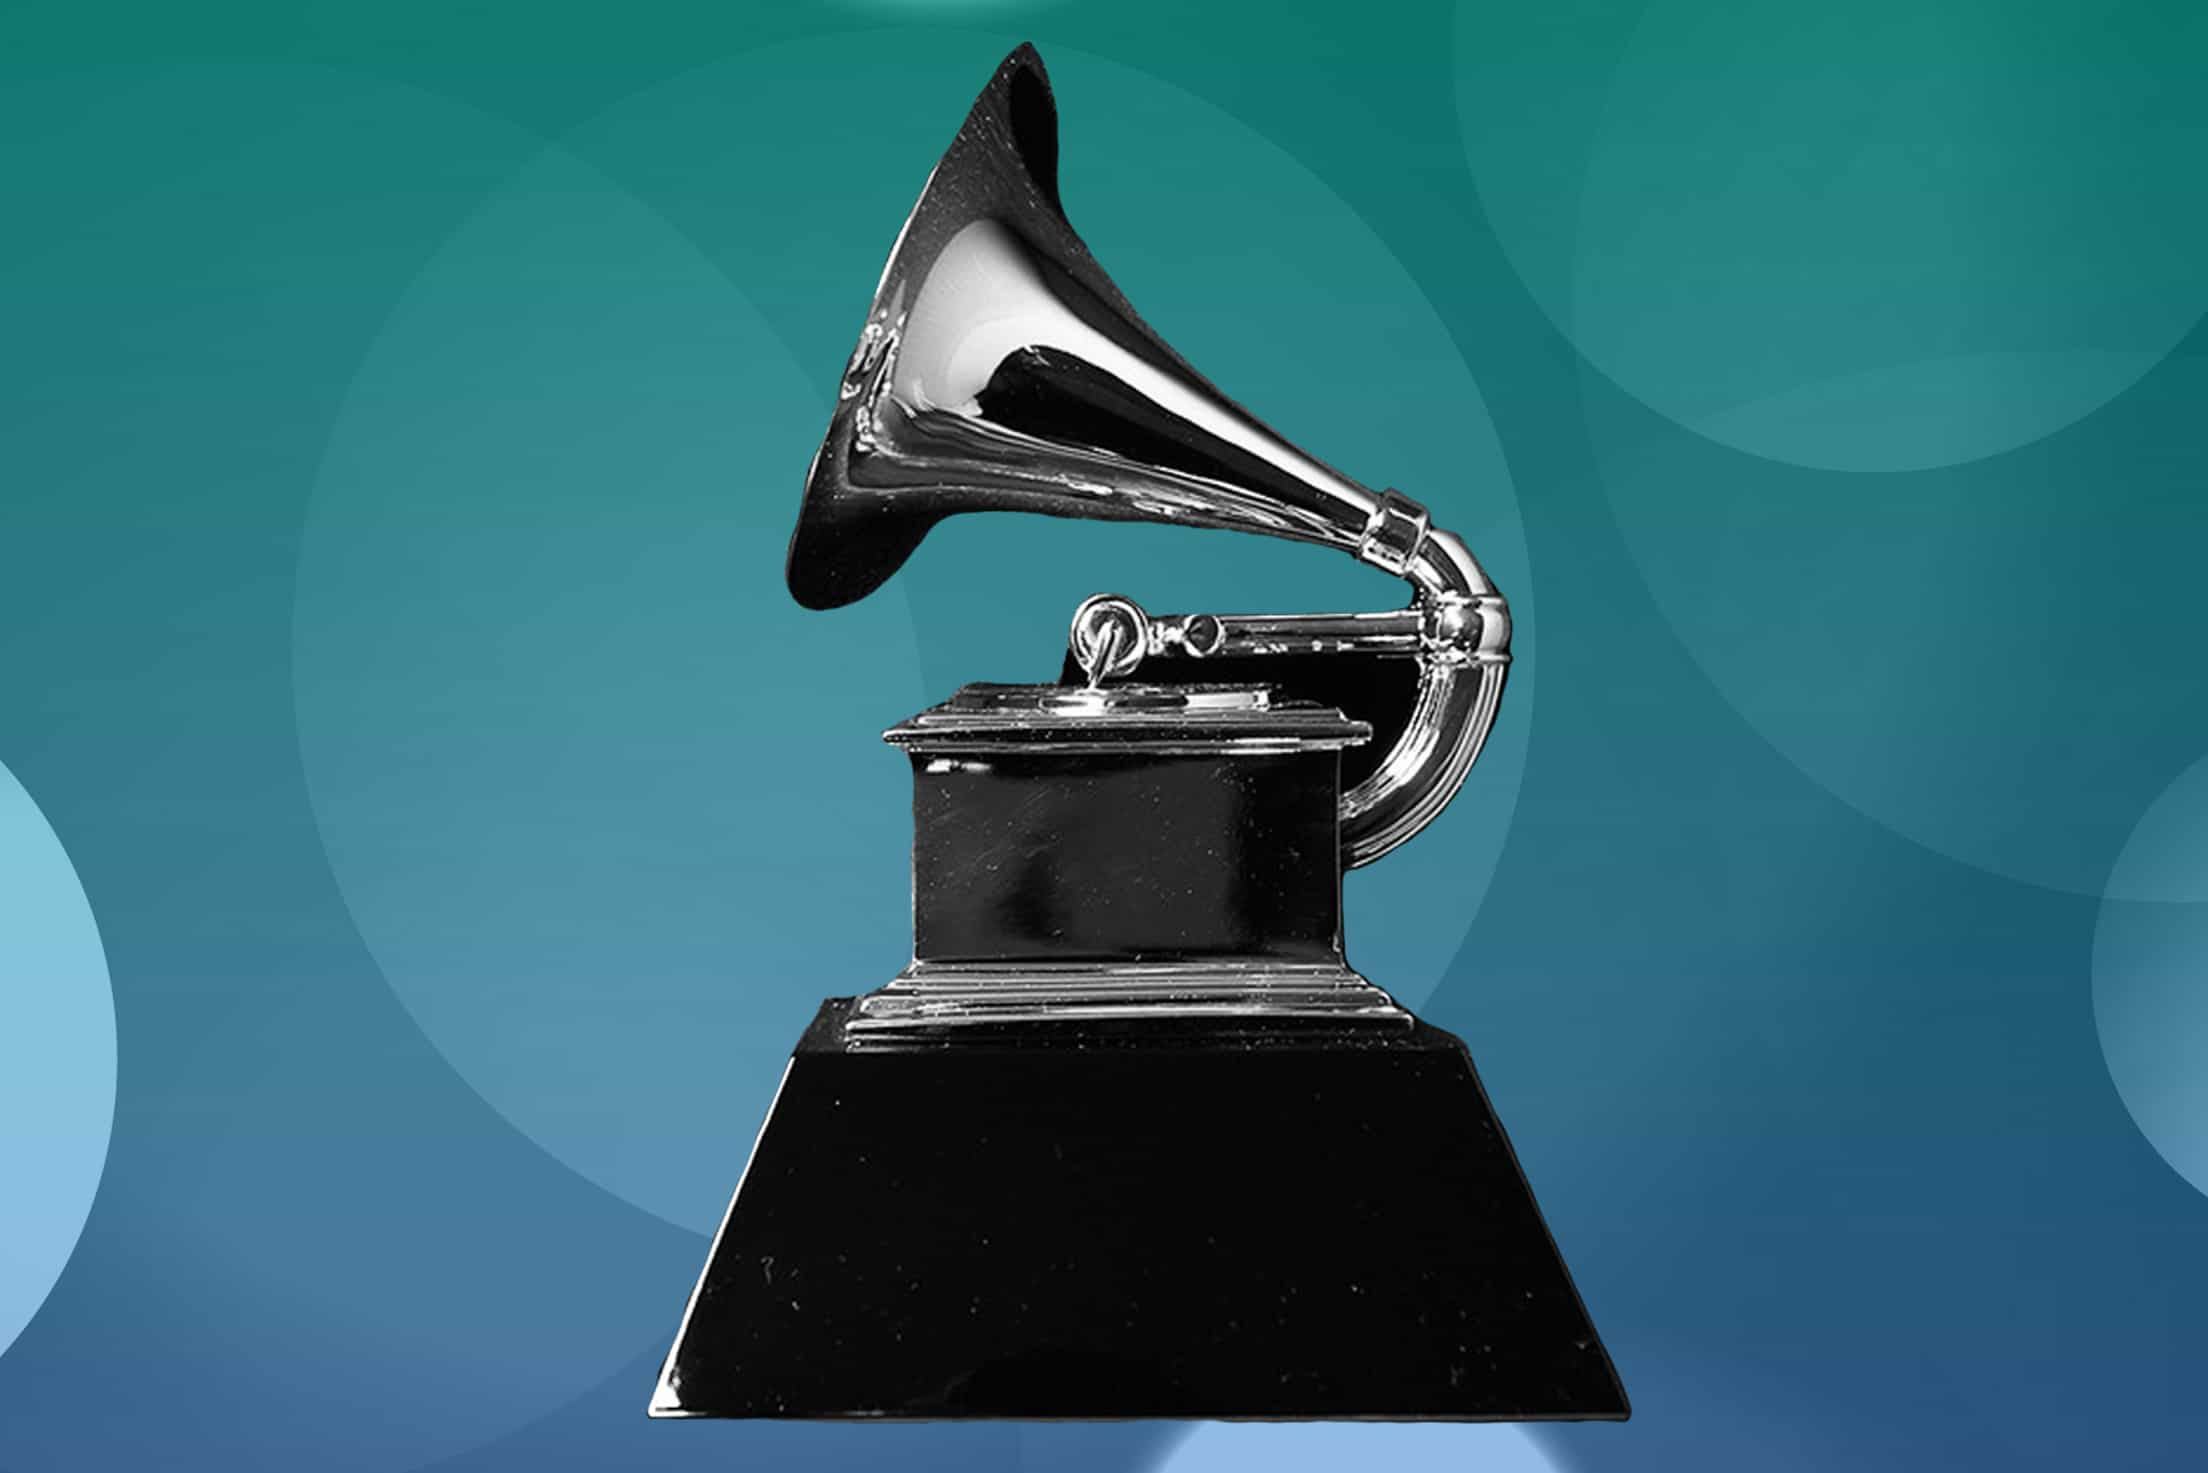 THE GRAMMYS RULE BOOK NOW ONLINE: 12 RULES THAT MAY SURPRISE YOU